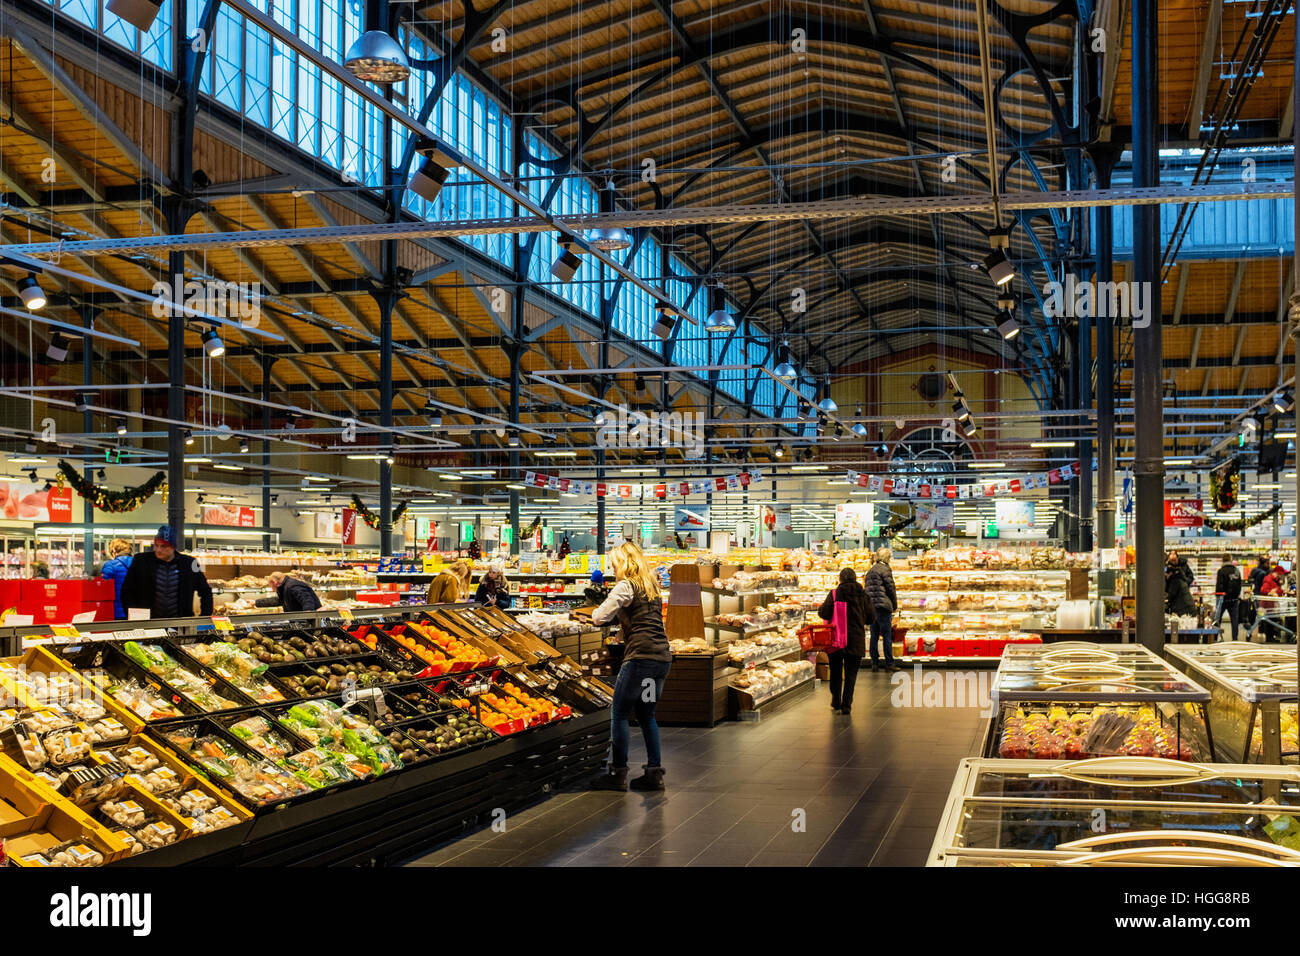 Rewe Supermarket fridges and shoppers in beautiful newly renovated old market hall building, Invalidenstrasse, Mitte, - Stock Image